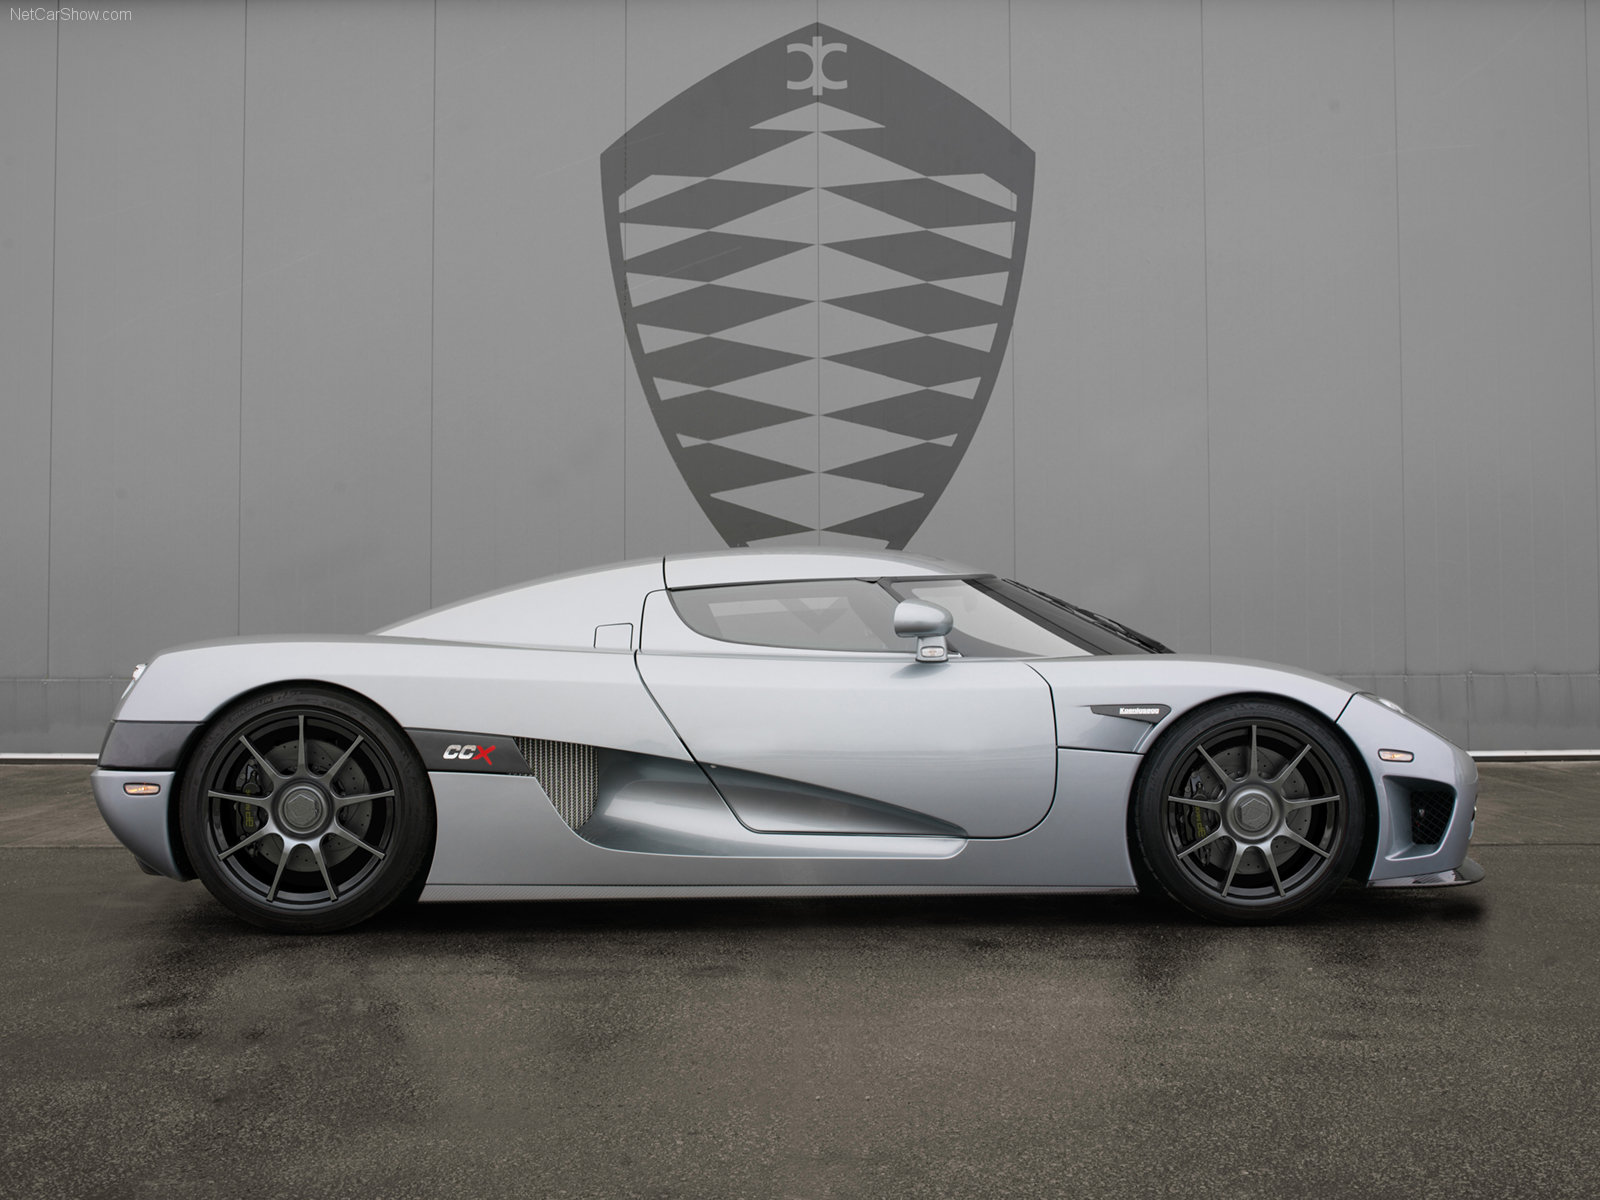 25 Exotic Amp Awesome Car Wallpapers Hd Edition Stugon Luxury